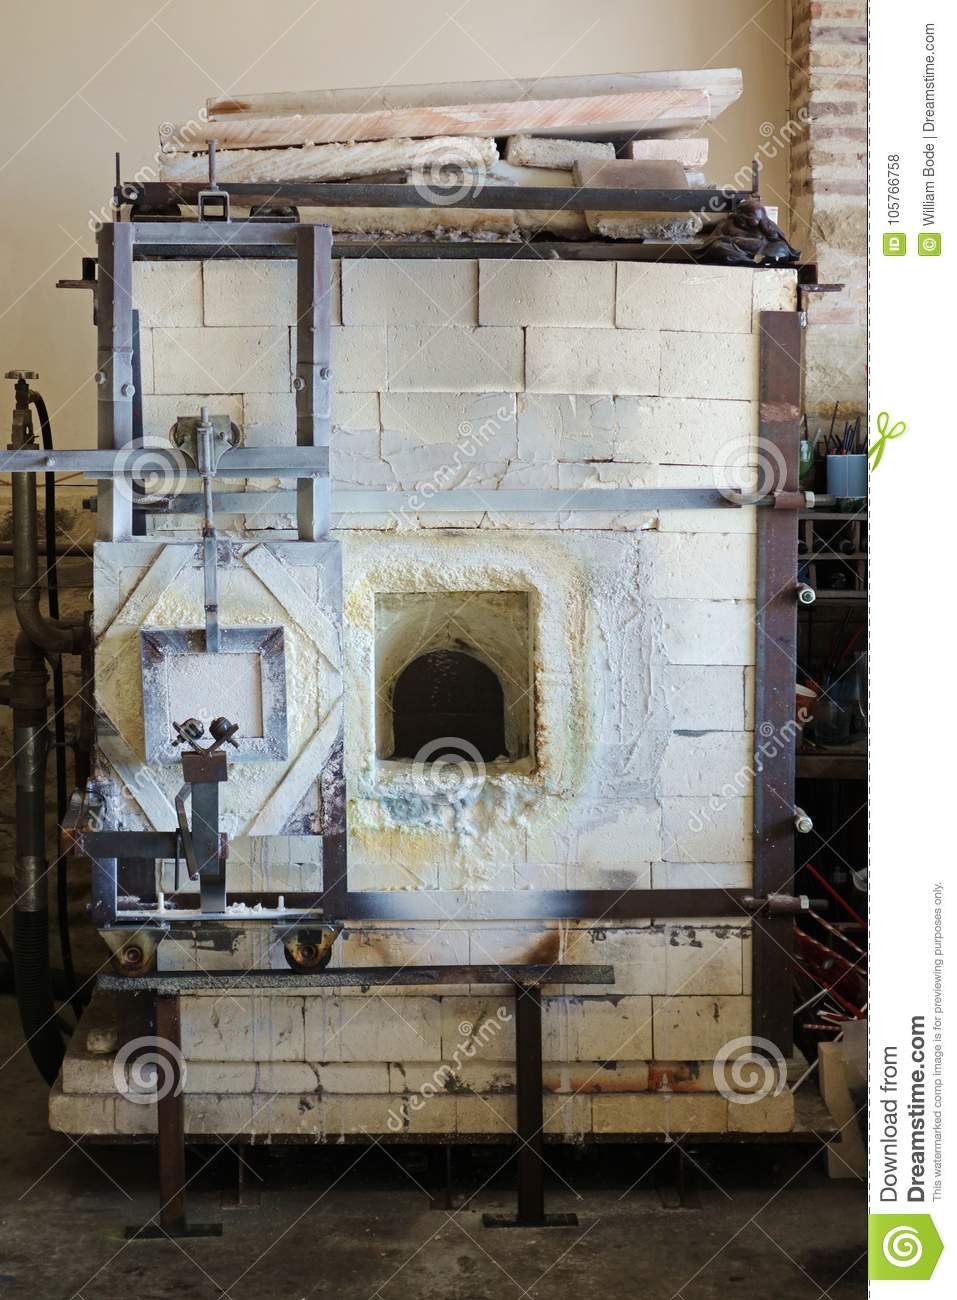 Refractory Brick Glassblowing Refractory Brick Glory Hole Furnace Stock Photo